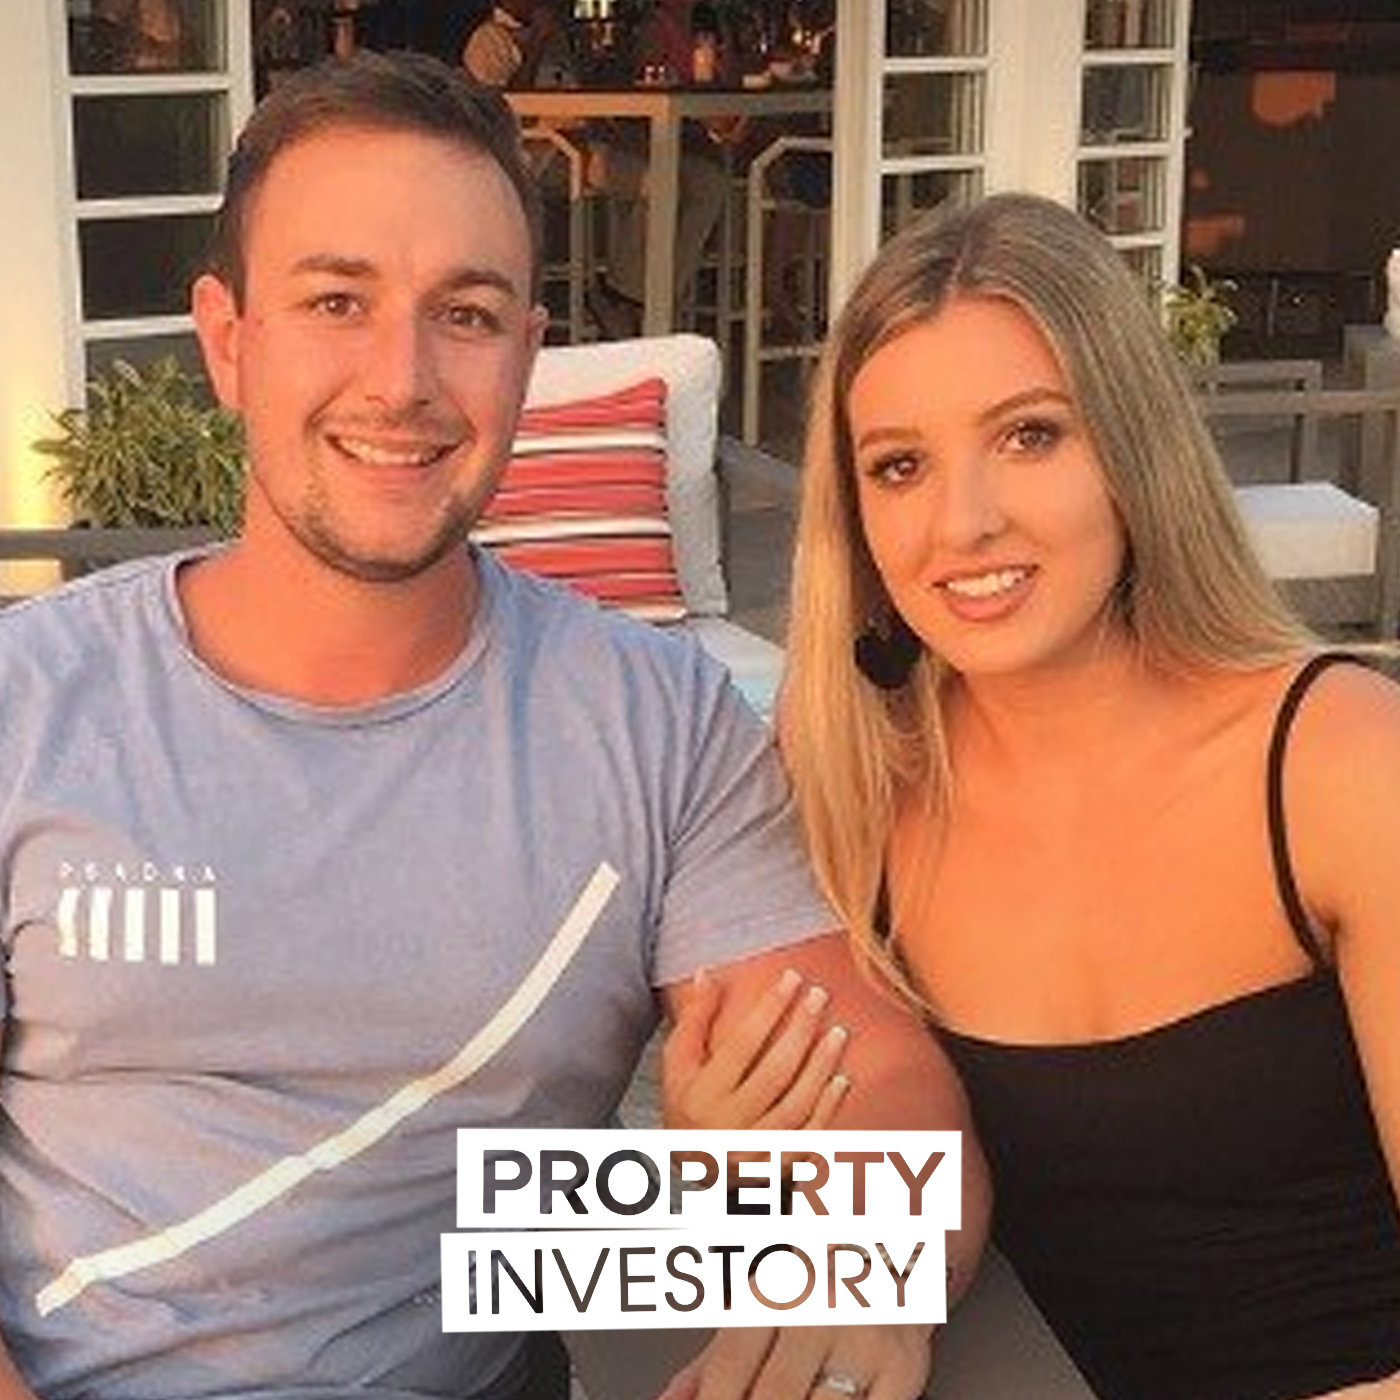 Sophie & Daniel Walsh Shares The Ups And Downs Building A 4 Million Portfolio